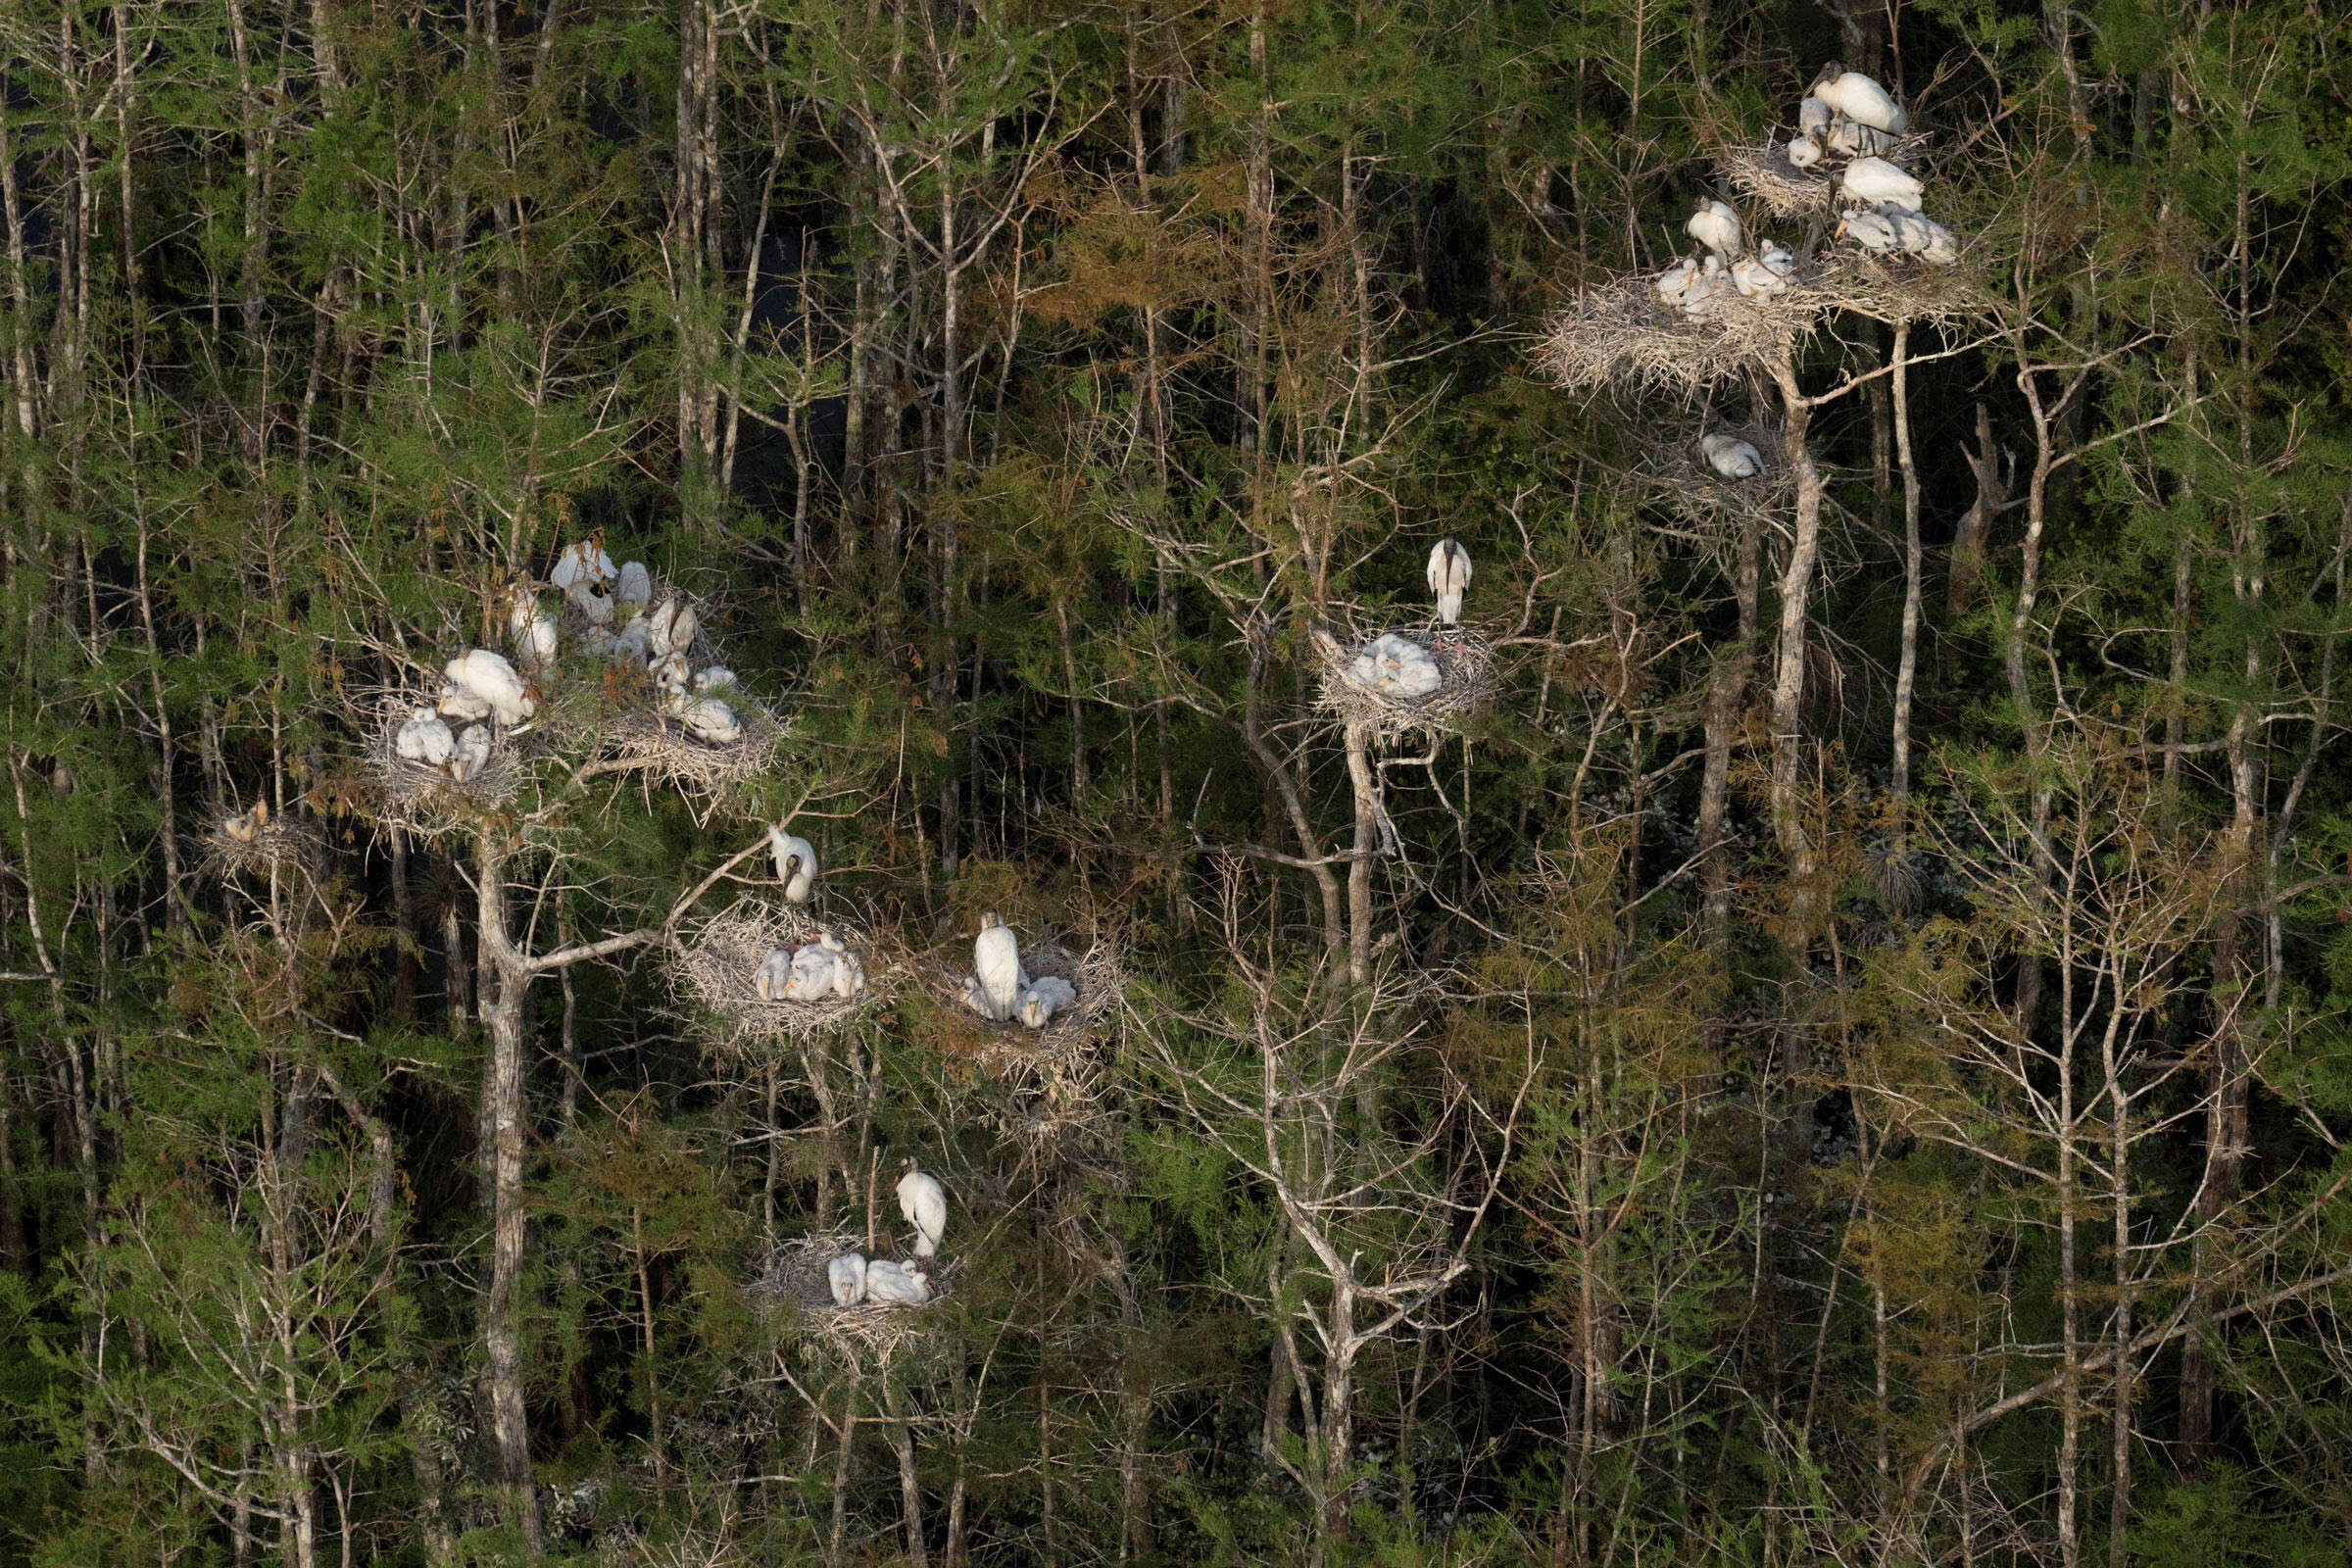 Colonies of Wood Storks thrive in the cypress domes and sloughs next to Big Cypress National Preserve. With ample foraging grounds from adequate rainfall left in the wake of Hurricane Irma, adults are able to raise multiple young this year. Mac Stone